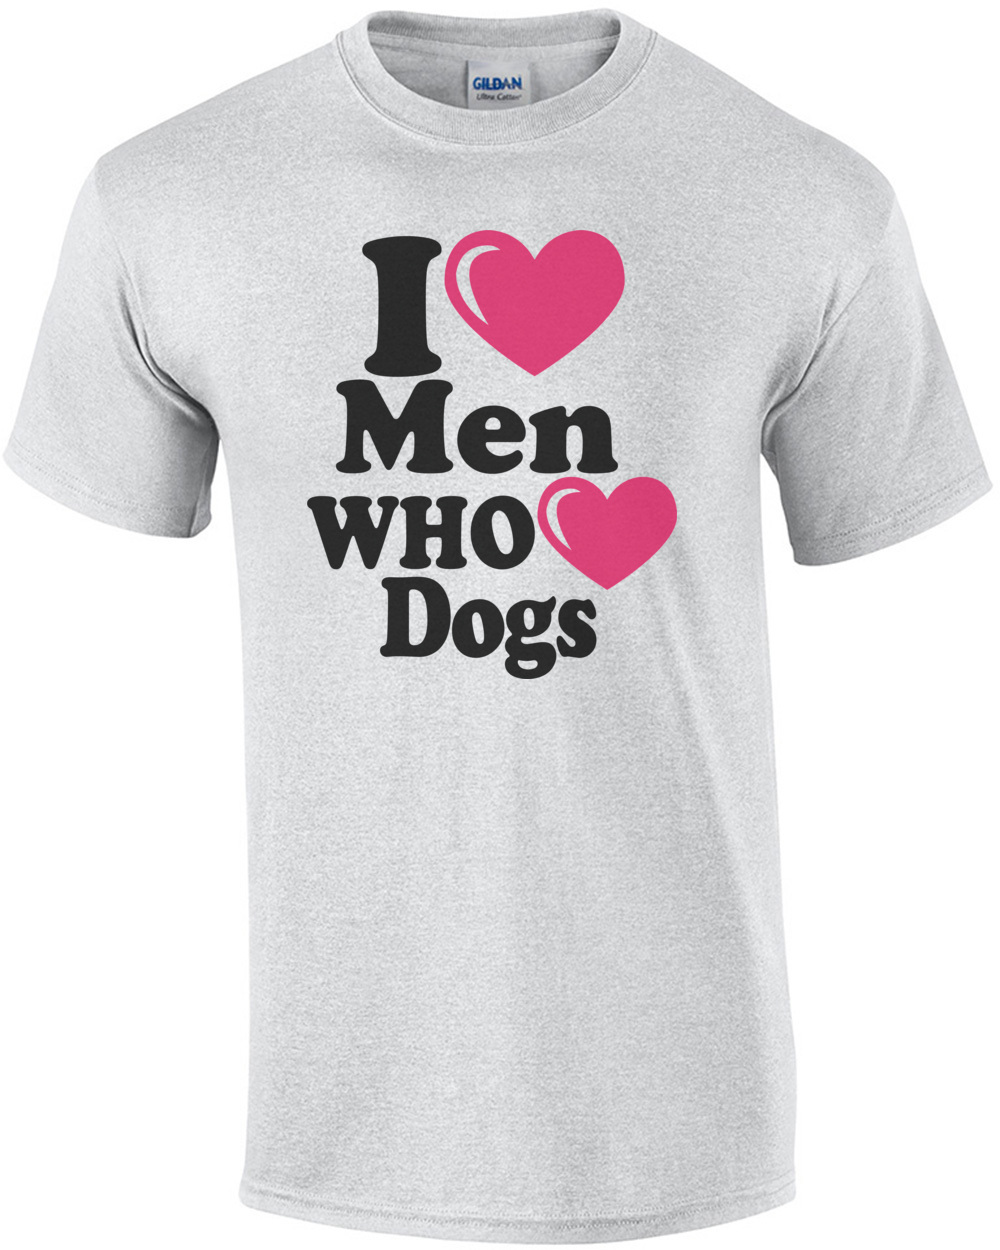 I Heart Men Who Dogs T Shirt